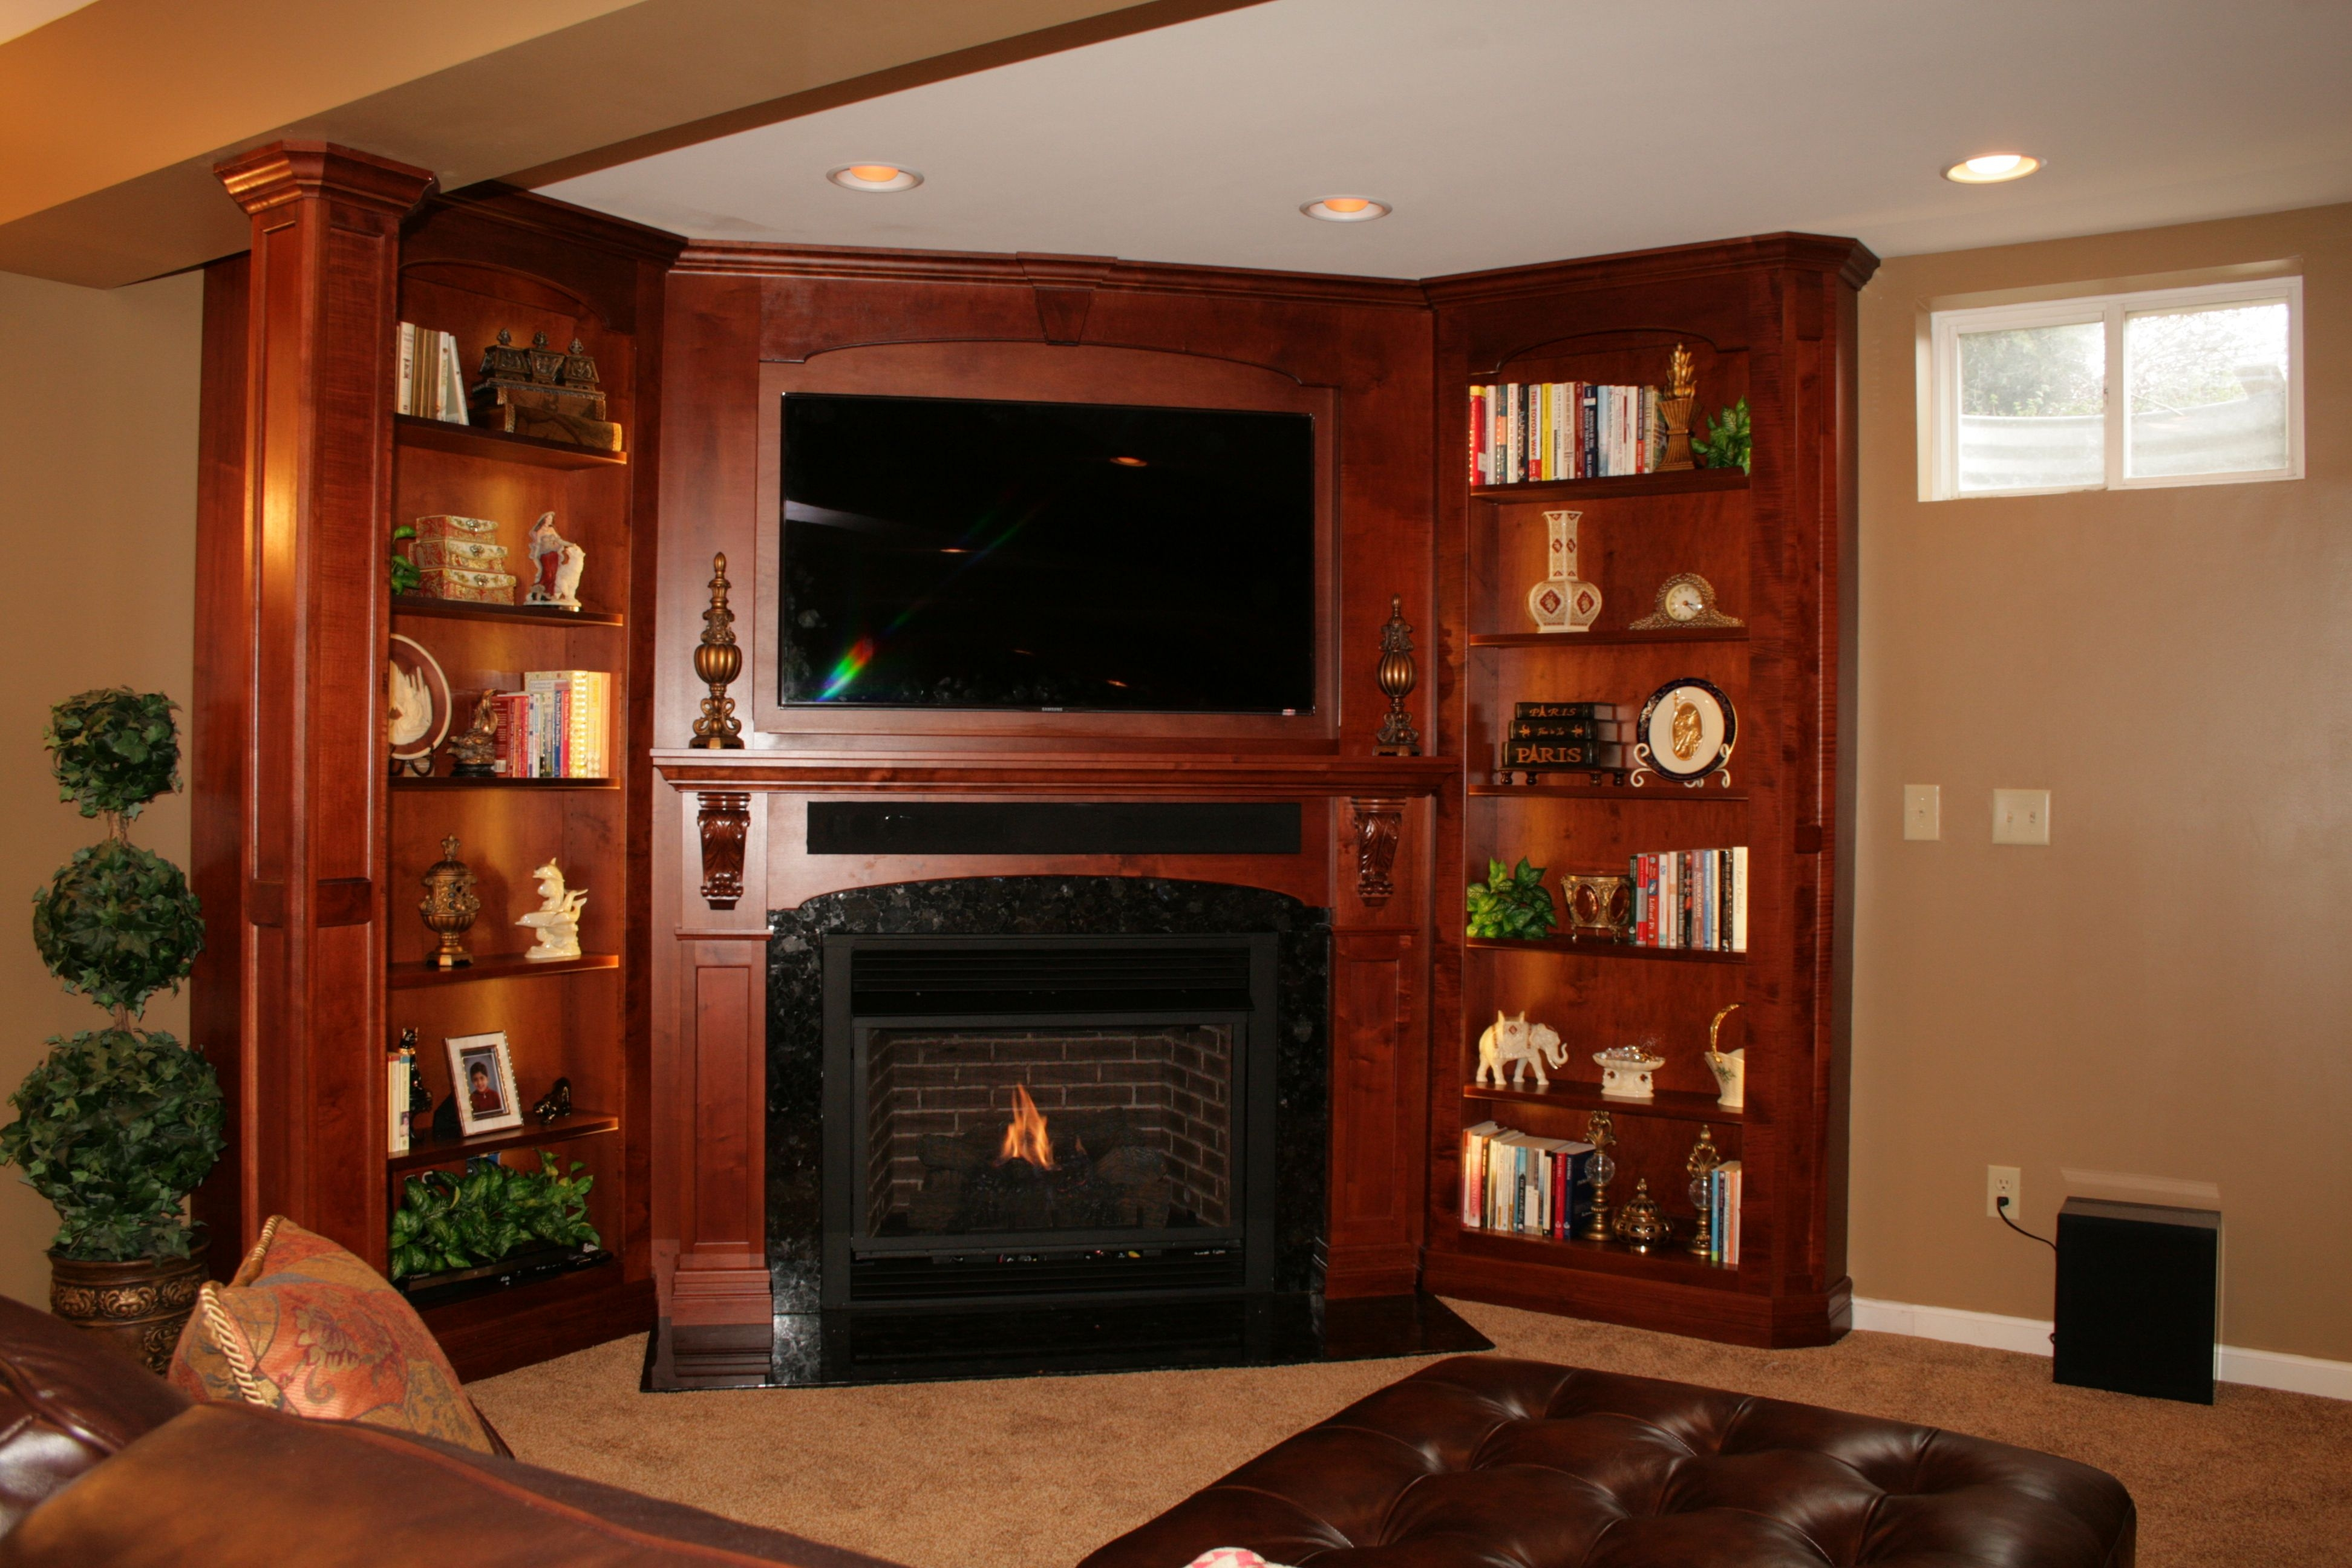 Handmade Solid Wood Built In Tv Wall Unit Fireplace And Bookcase With Regard To Handmade Bookcase (View 10 of 15)